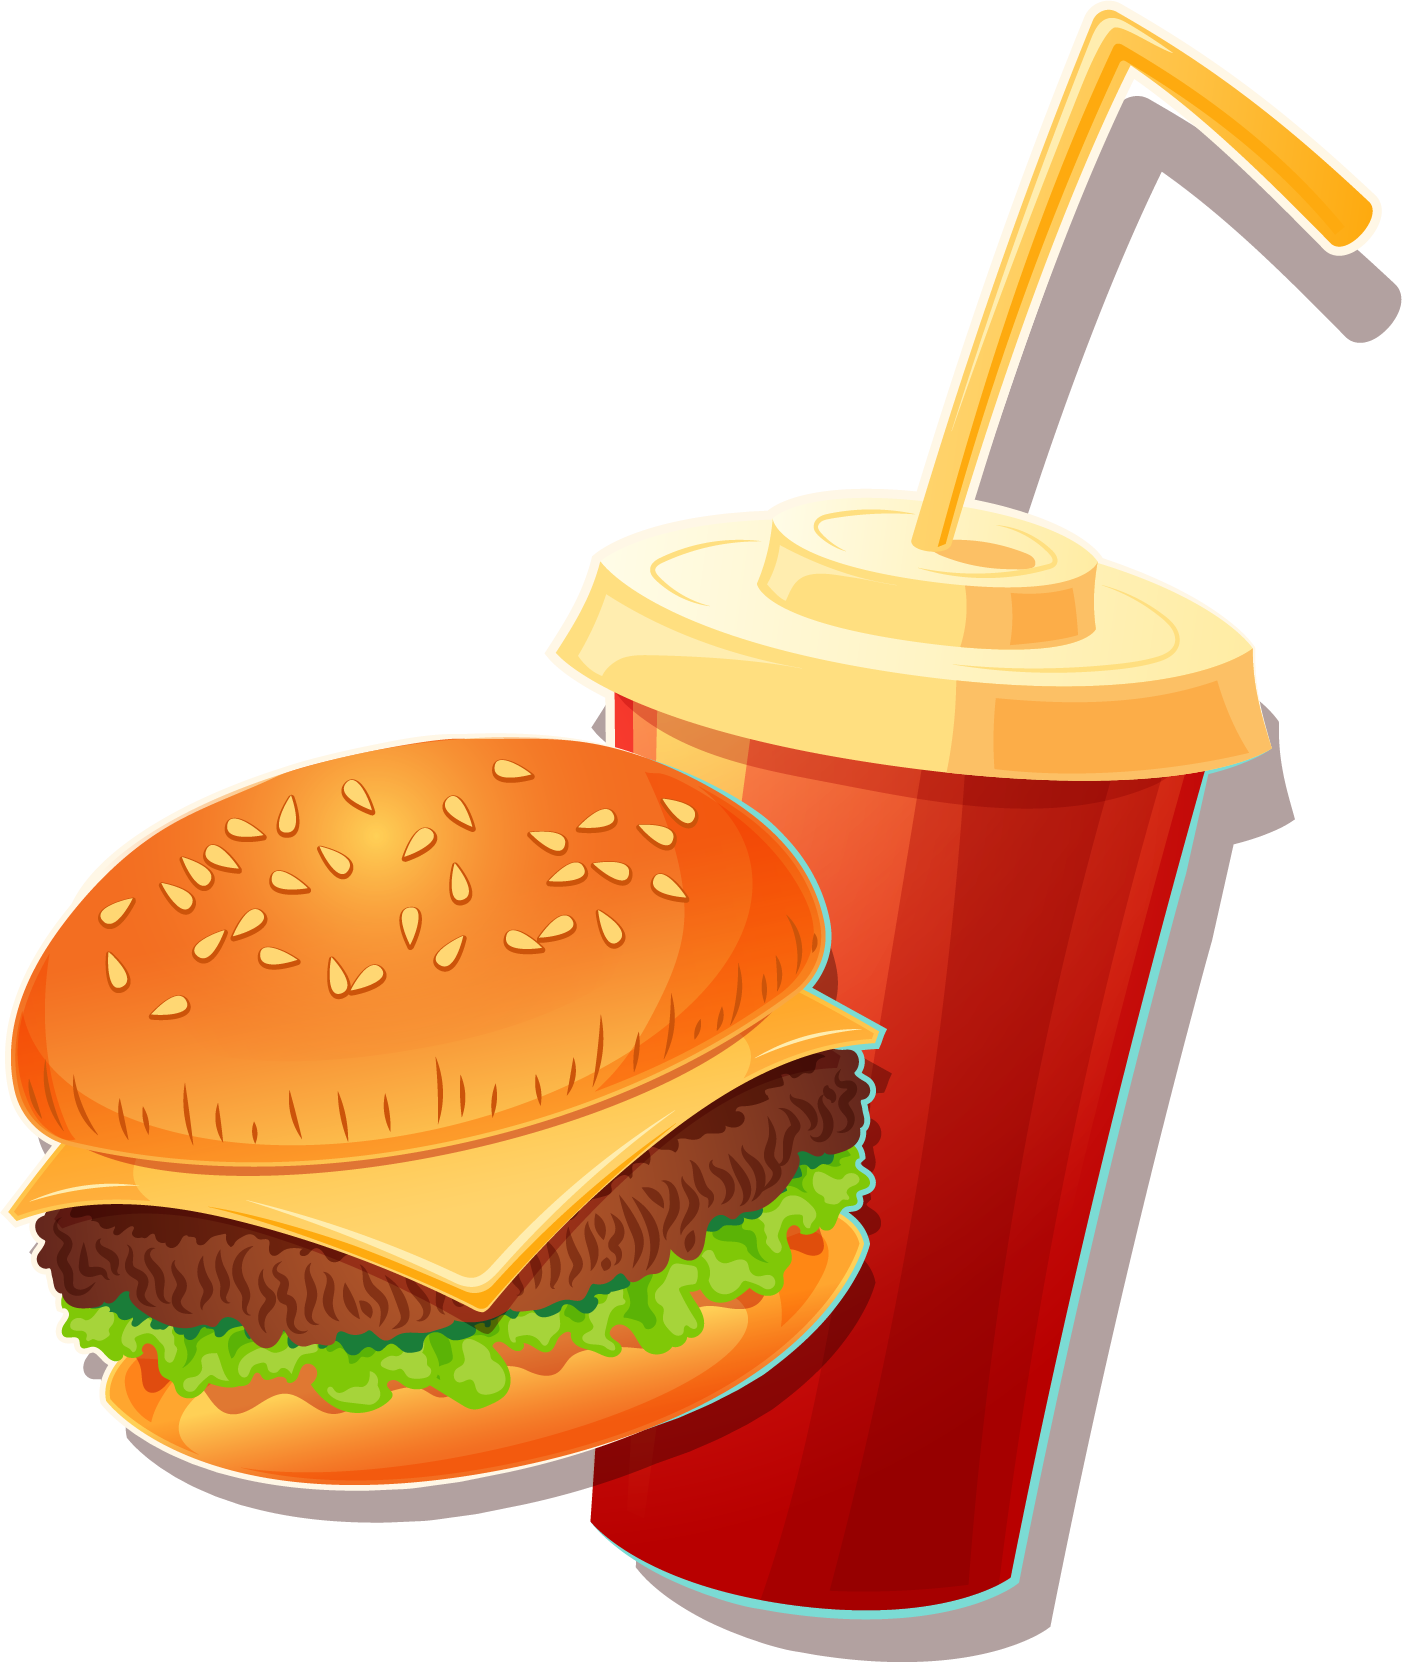 jpg royalty free library Hamburger Cheeseburger Fast food Veggie burger Junk food